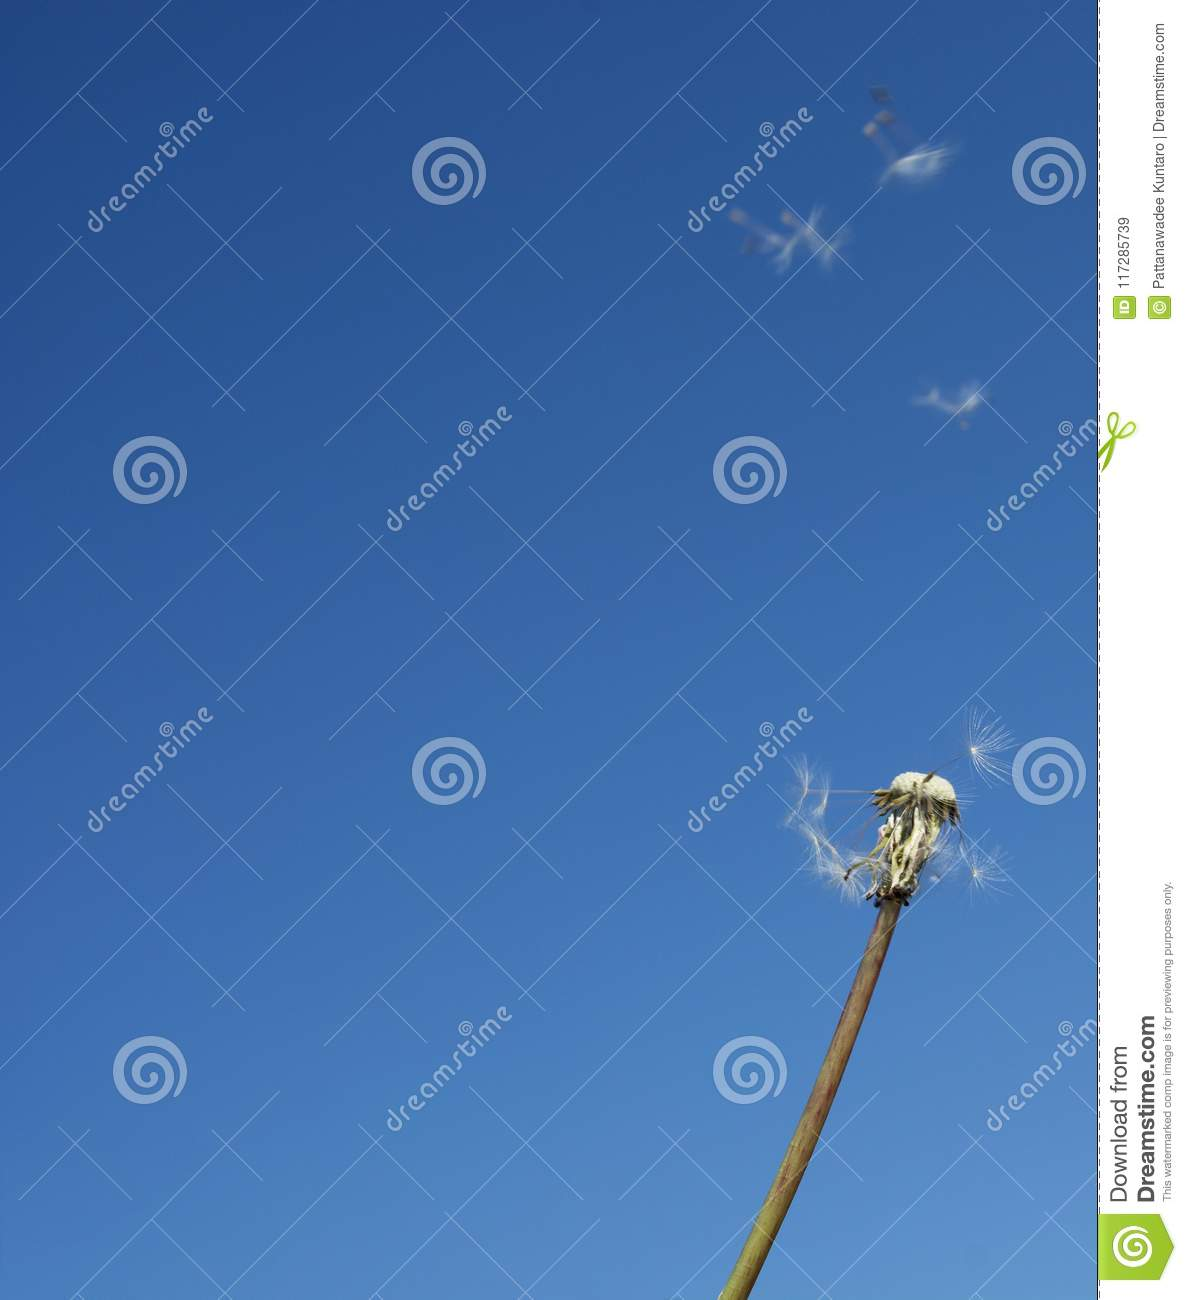 Flying Beautiful Dandelion Seeds In The Blue Sky Stock